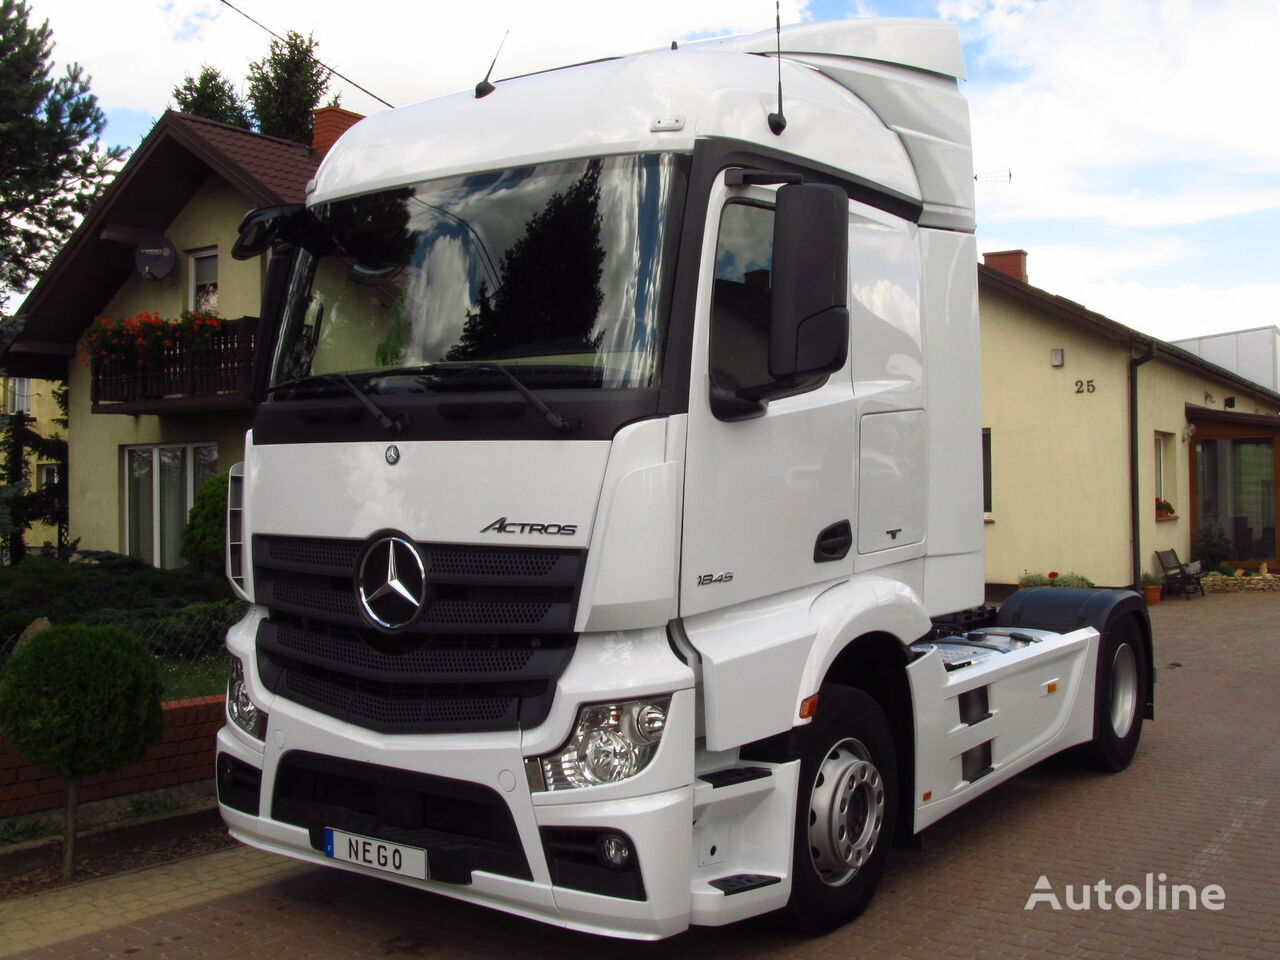 mercedes benz actros 1845 euro 6 mp4 stream space 2014 tractor units for sale truck tractor. Black Bedroom Furniture Sets. Home Design Ideas